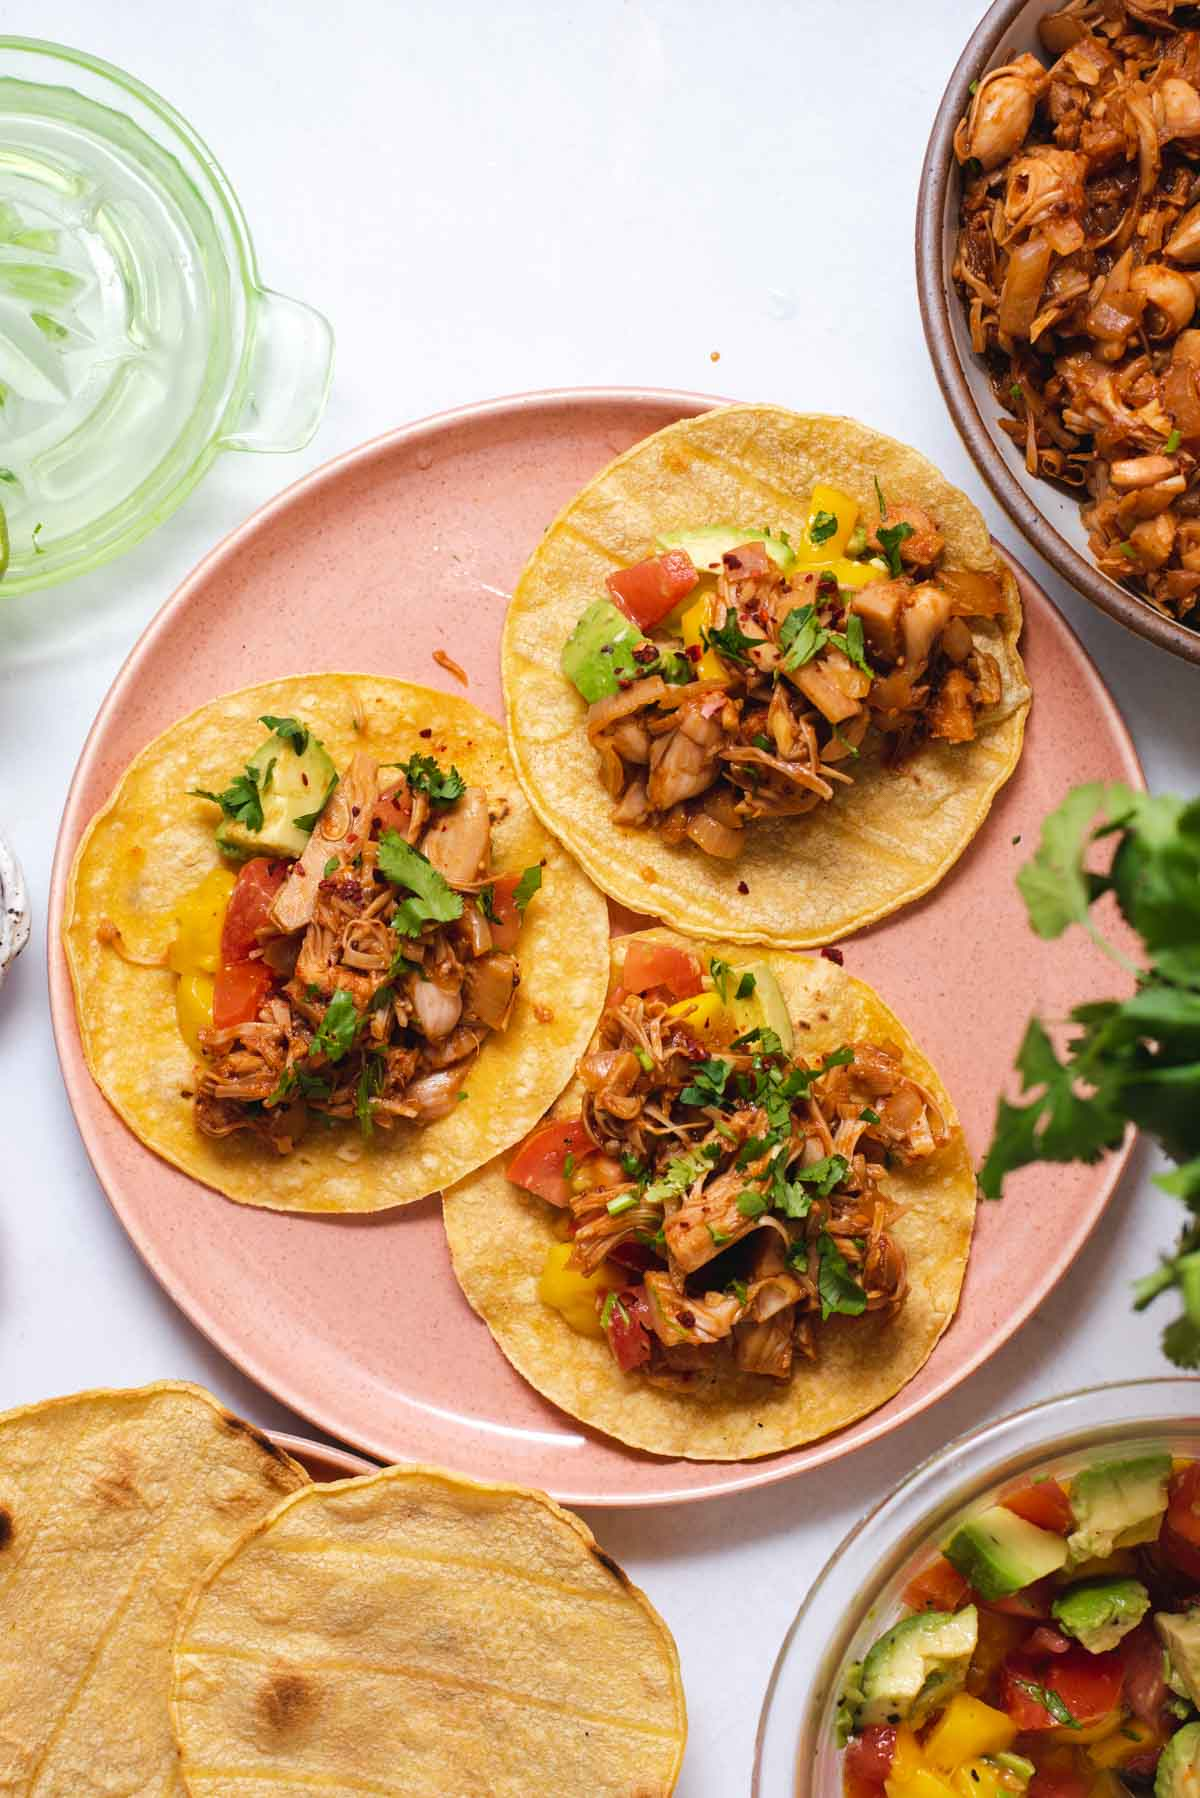 Overhead view of pink plate with three jackfruit tacos